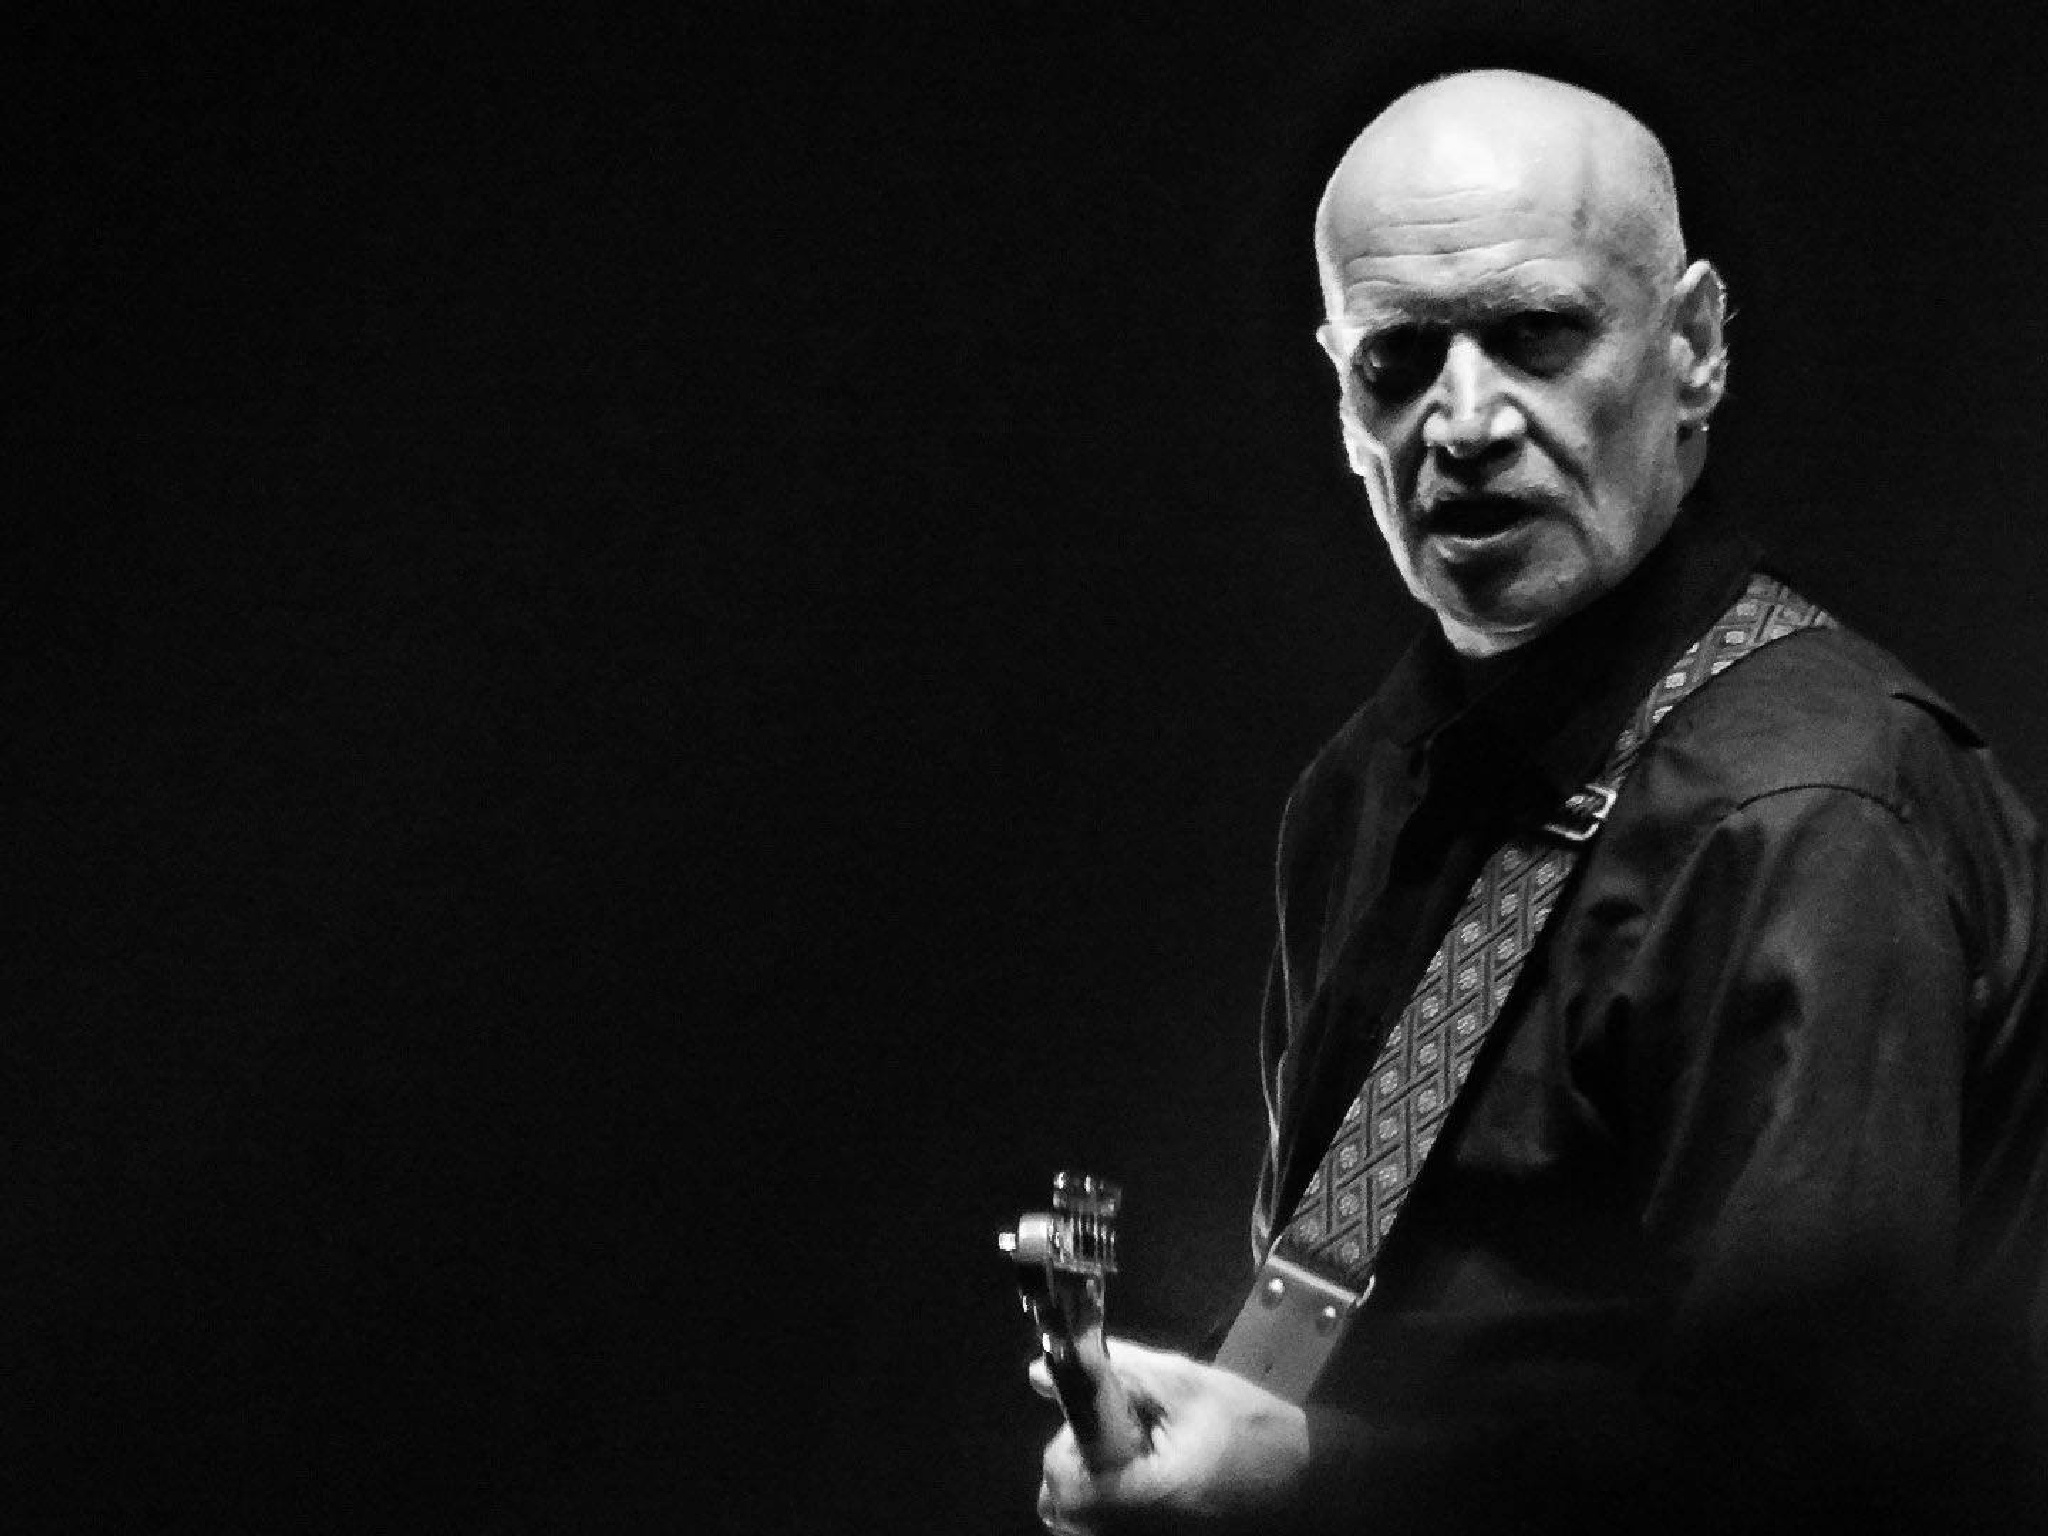 Wilko Johnson by roborbob